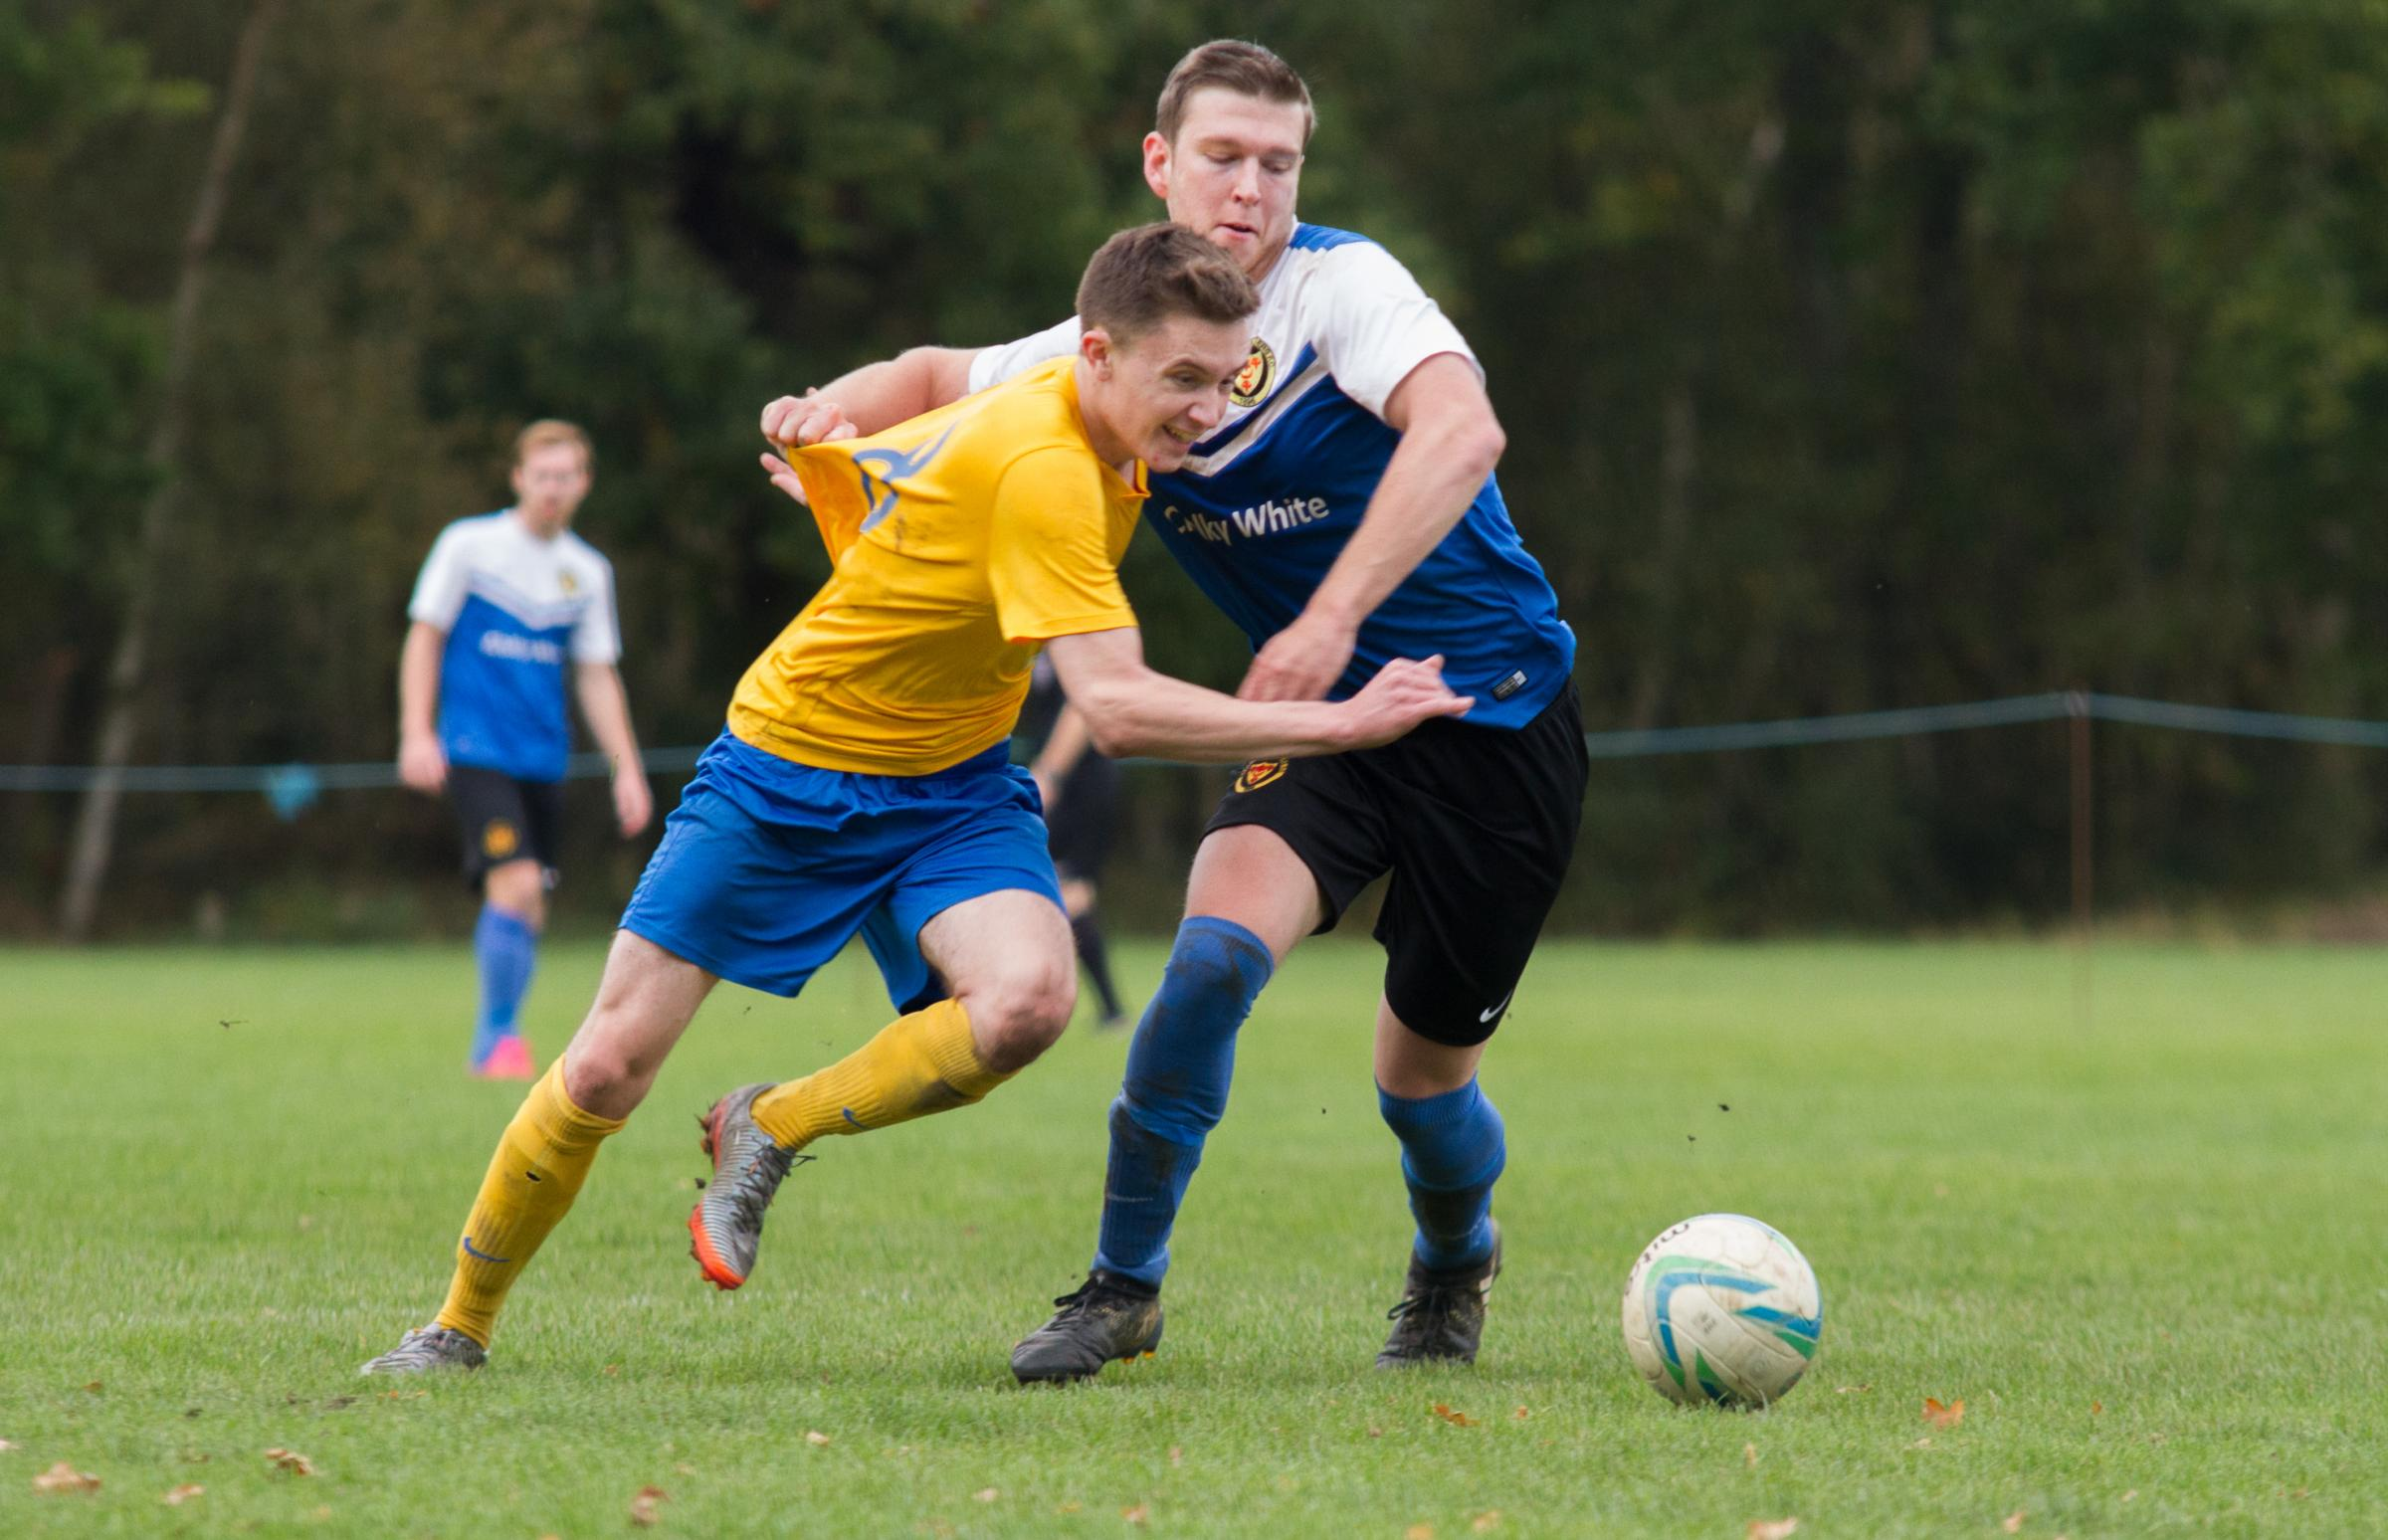 AT THE DOUBLE: Jack Voisey scored twice for Parley in their comfortable win against Sherborne Town reserves (Picture: Steve Harris)